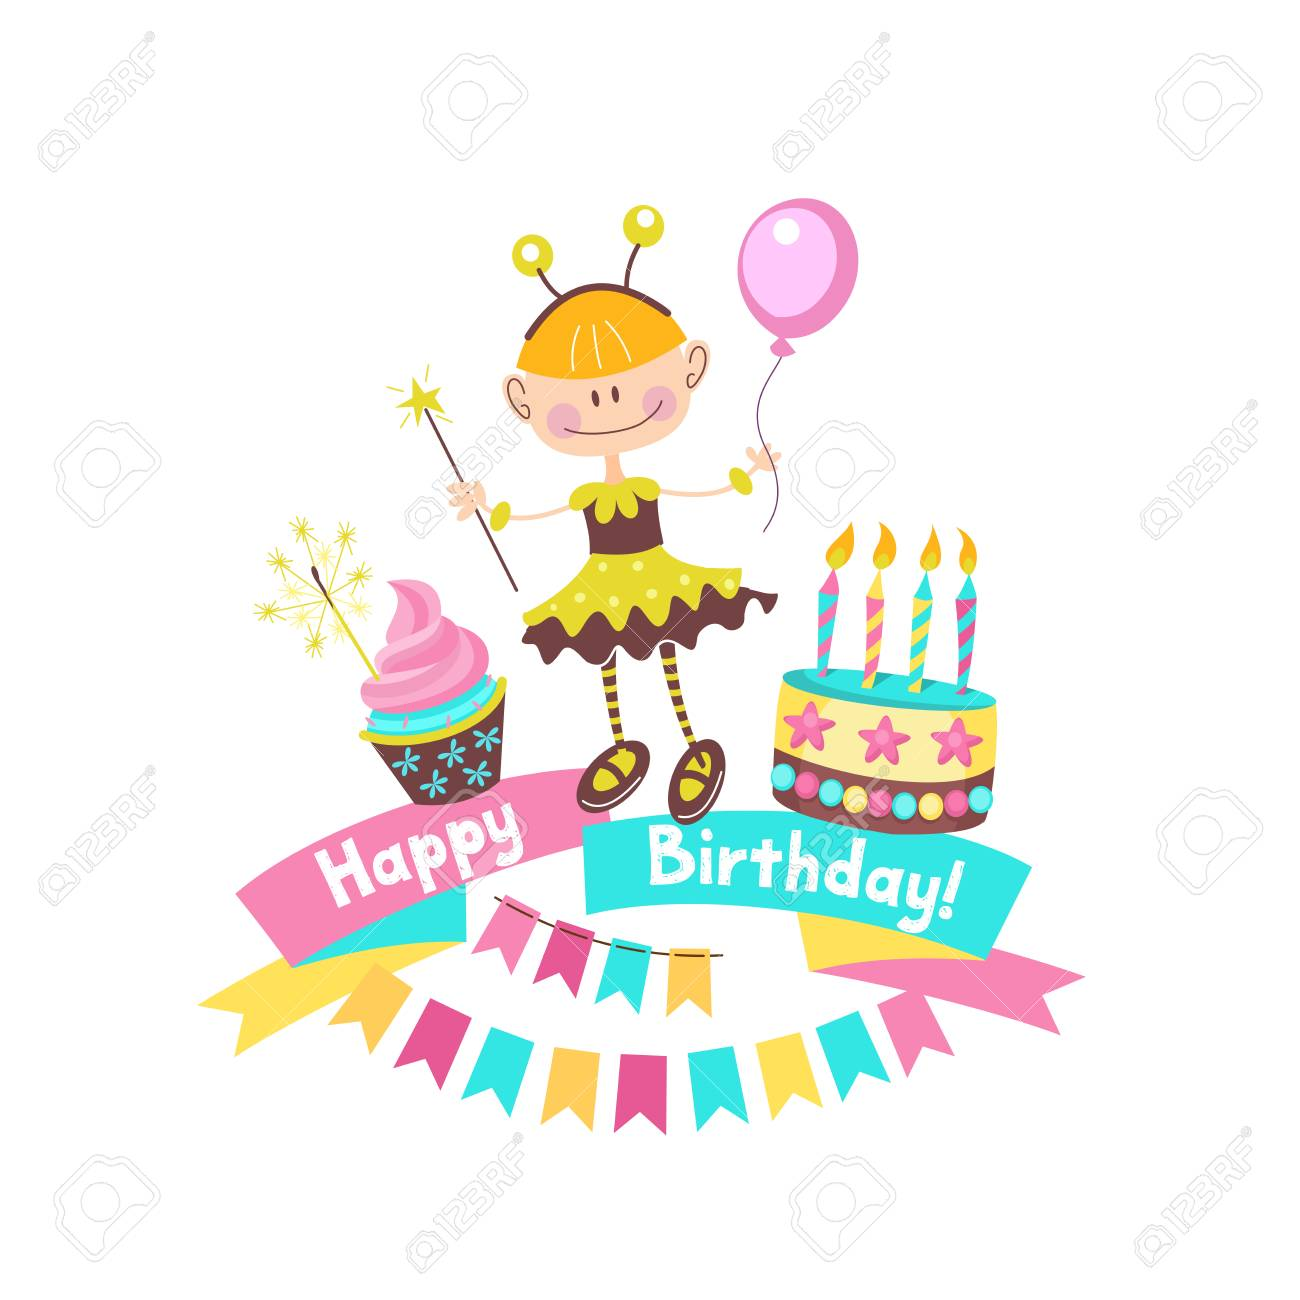 Happy Birthday Greeting Cards Cake With Candles Ribbons Balloons Banners